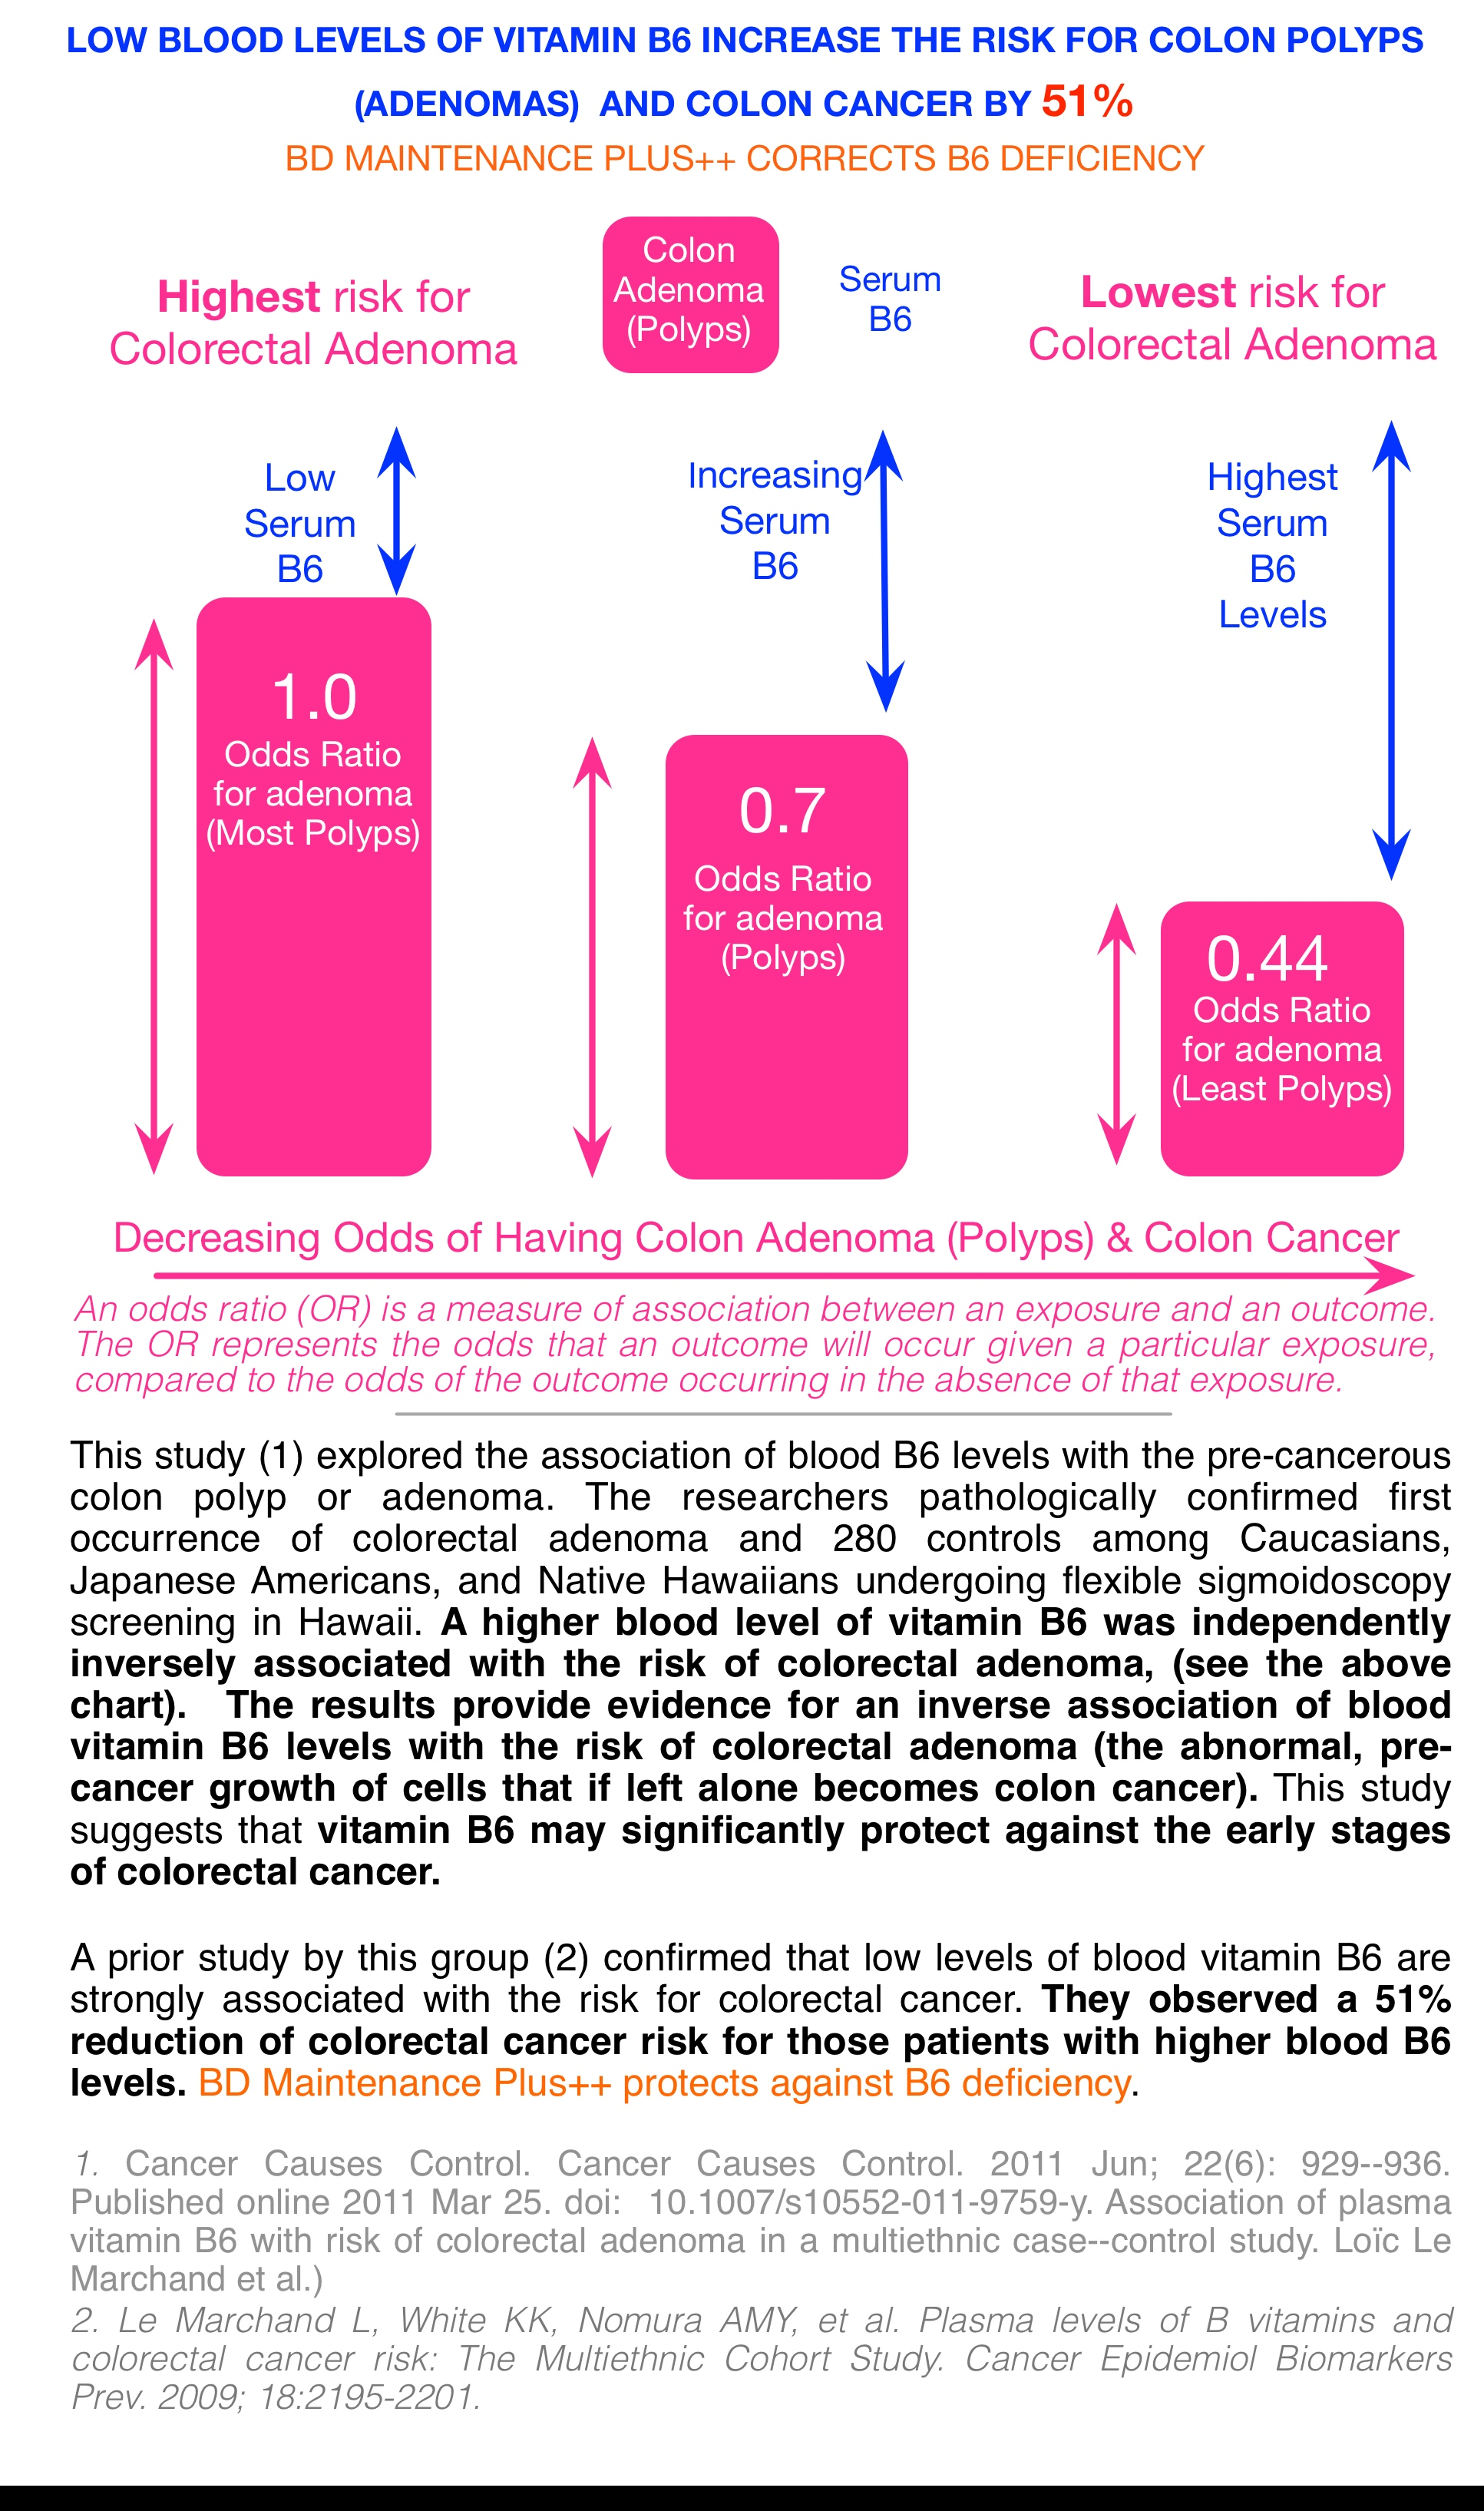 B6 Colon Cancer Risk.jpg